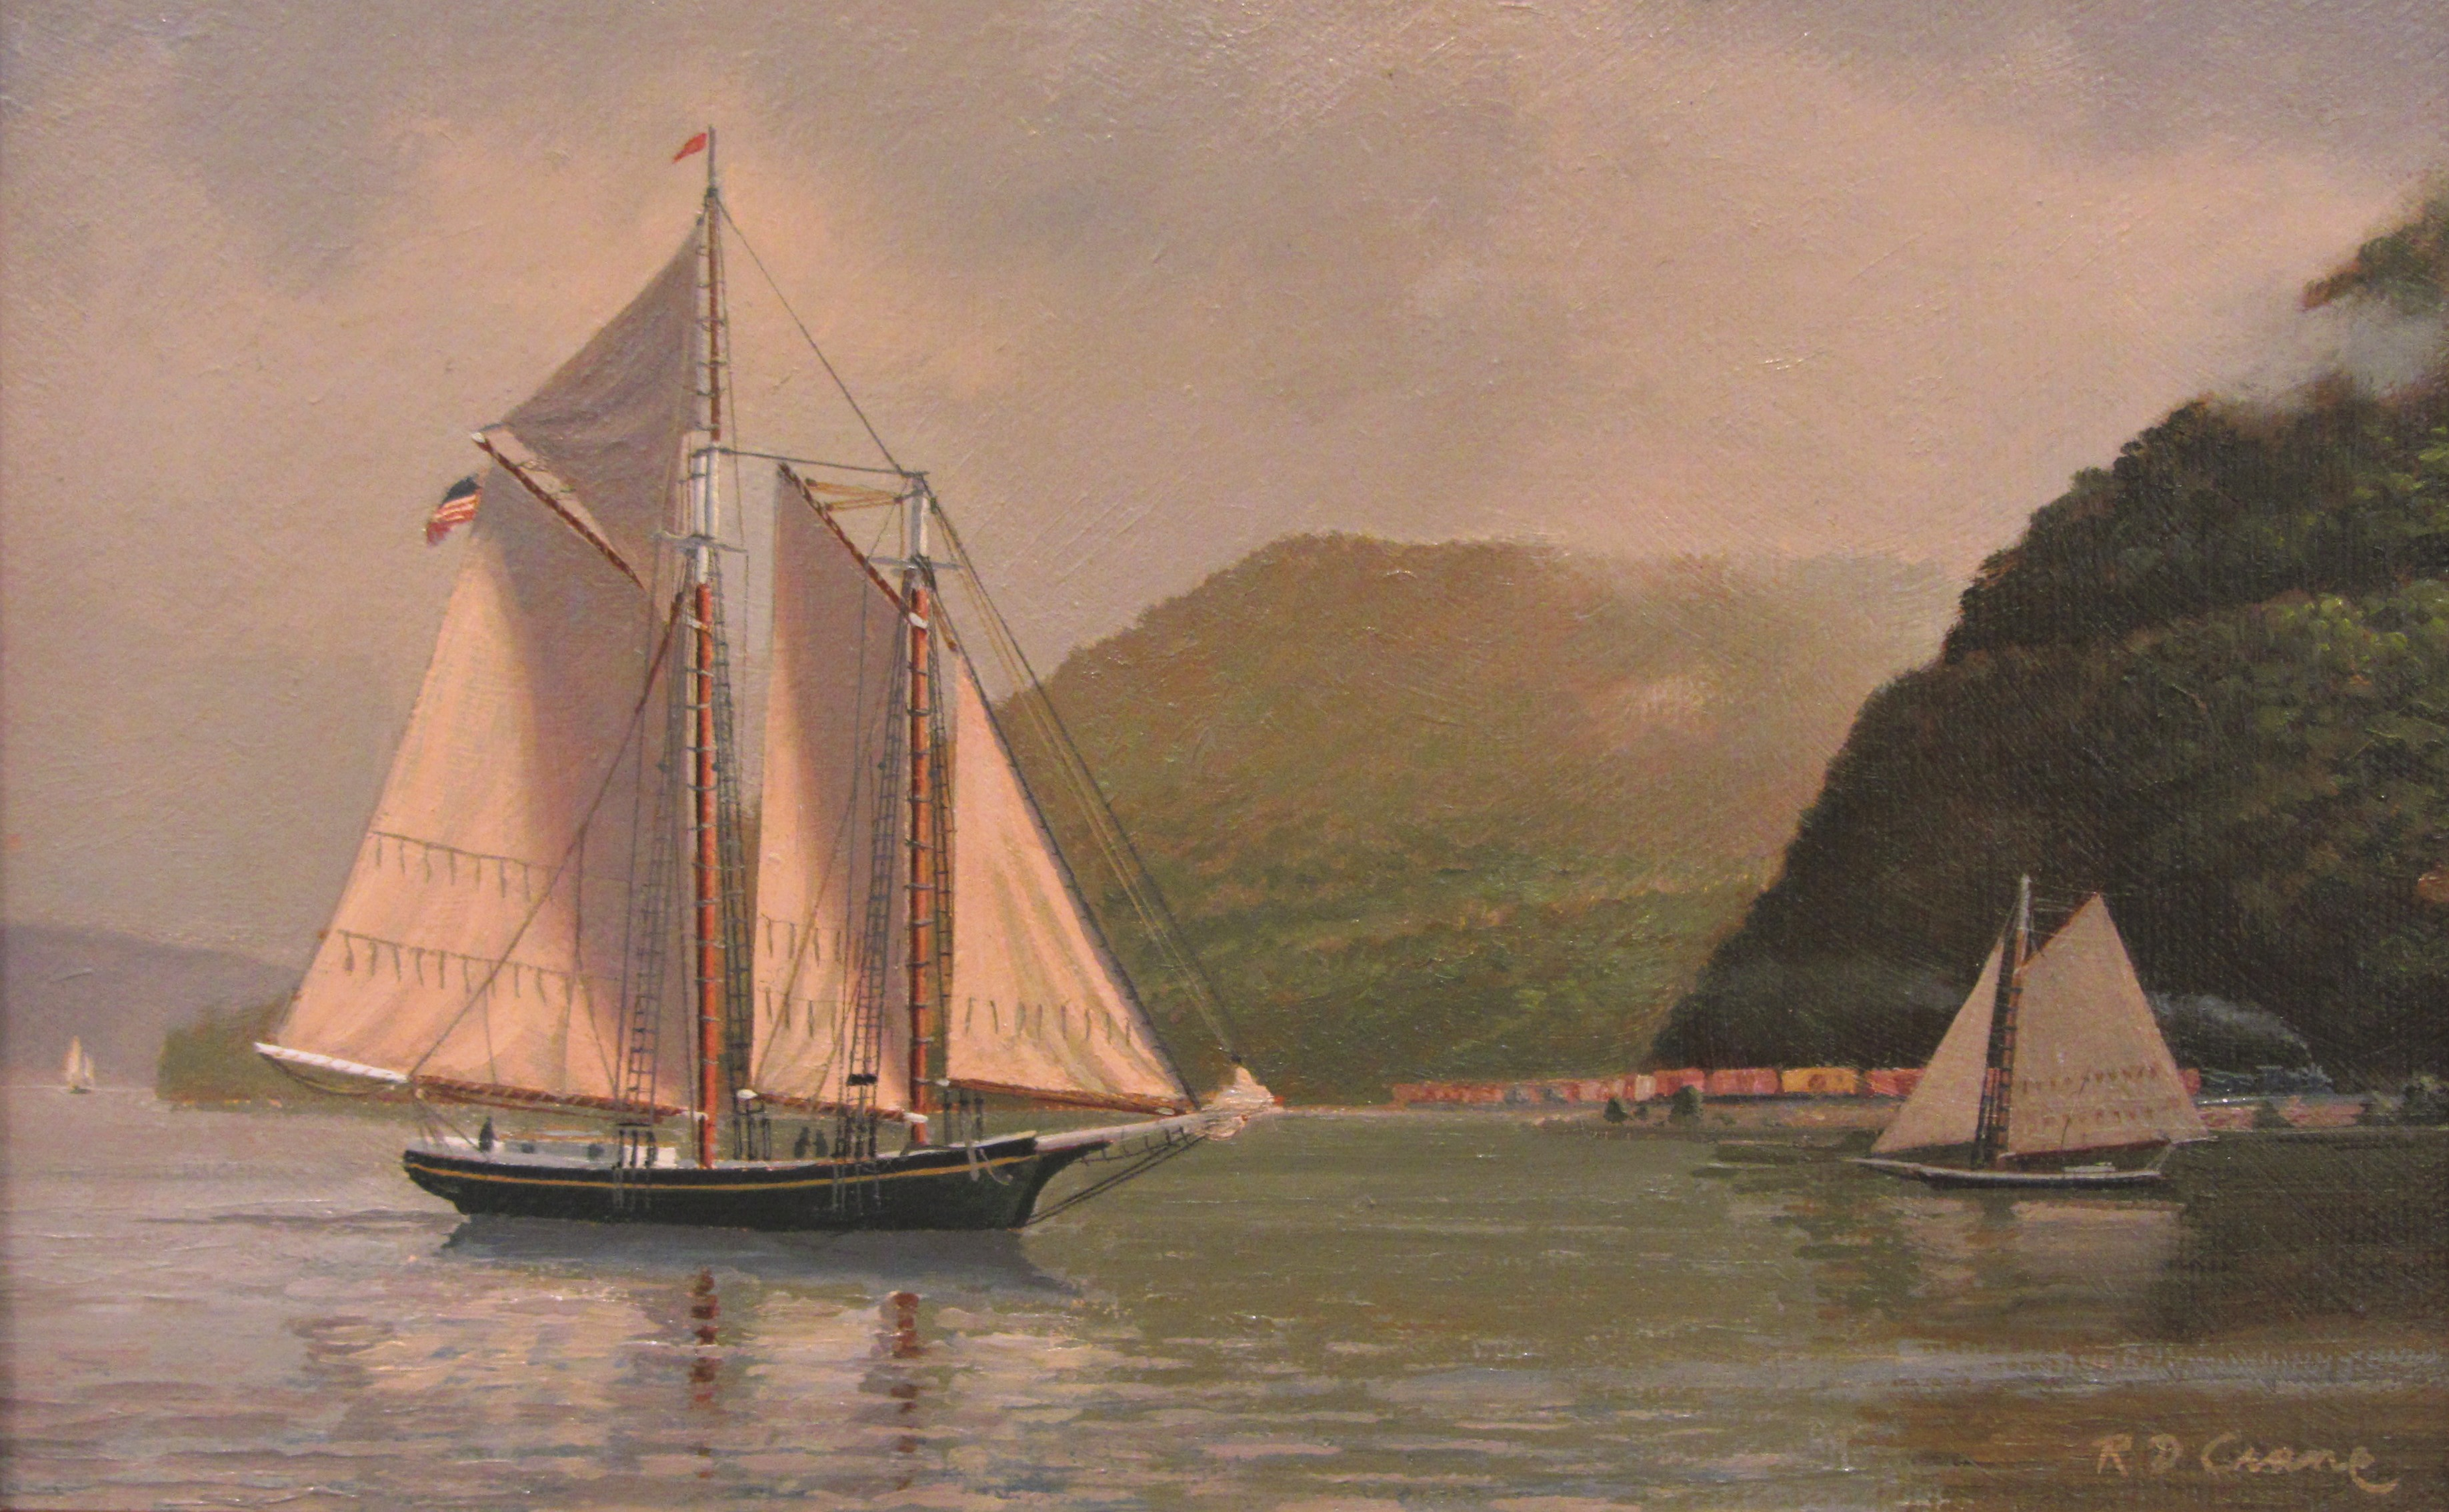 Ray Crane, Dissolving Mist on the Hudson, Oil, 6 x 9. Photo credit: Rieta Park/Mystic Seaport